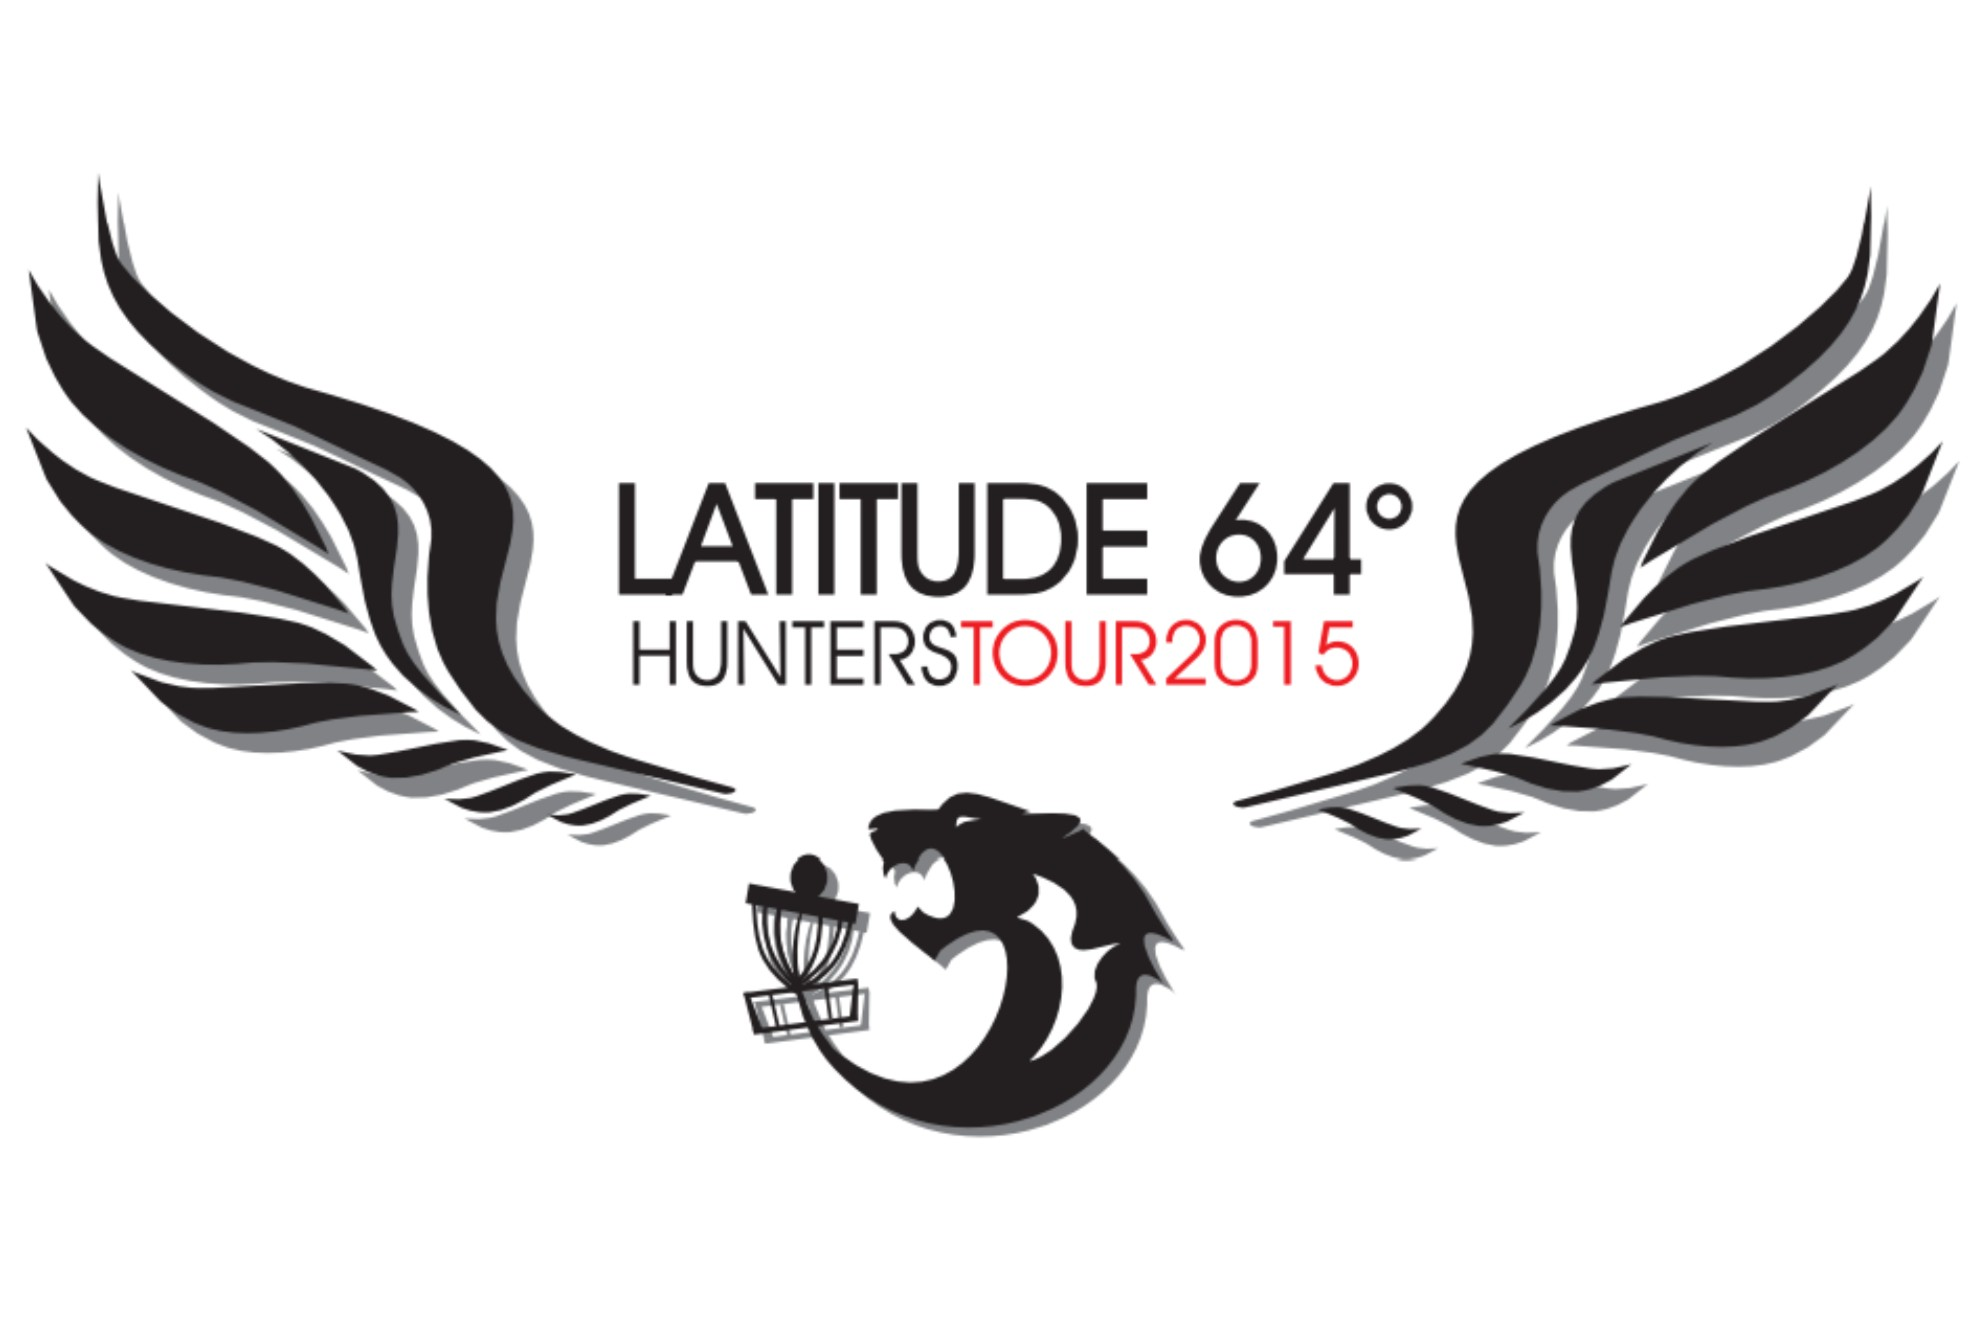 Latitude 64º Hunters Tour 2015